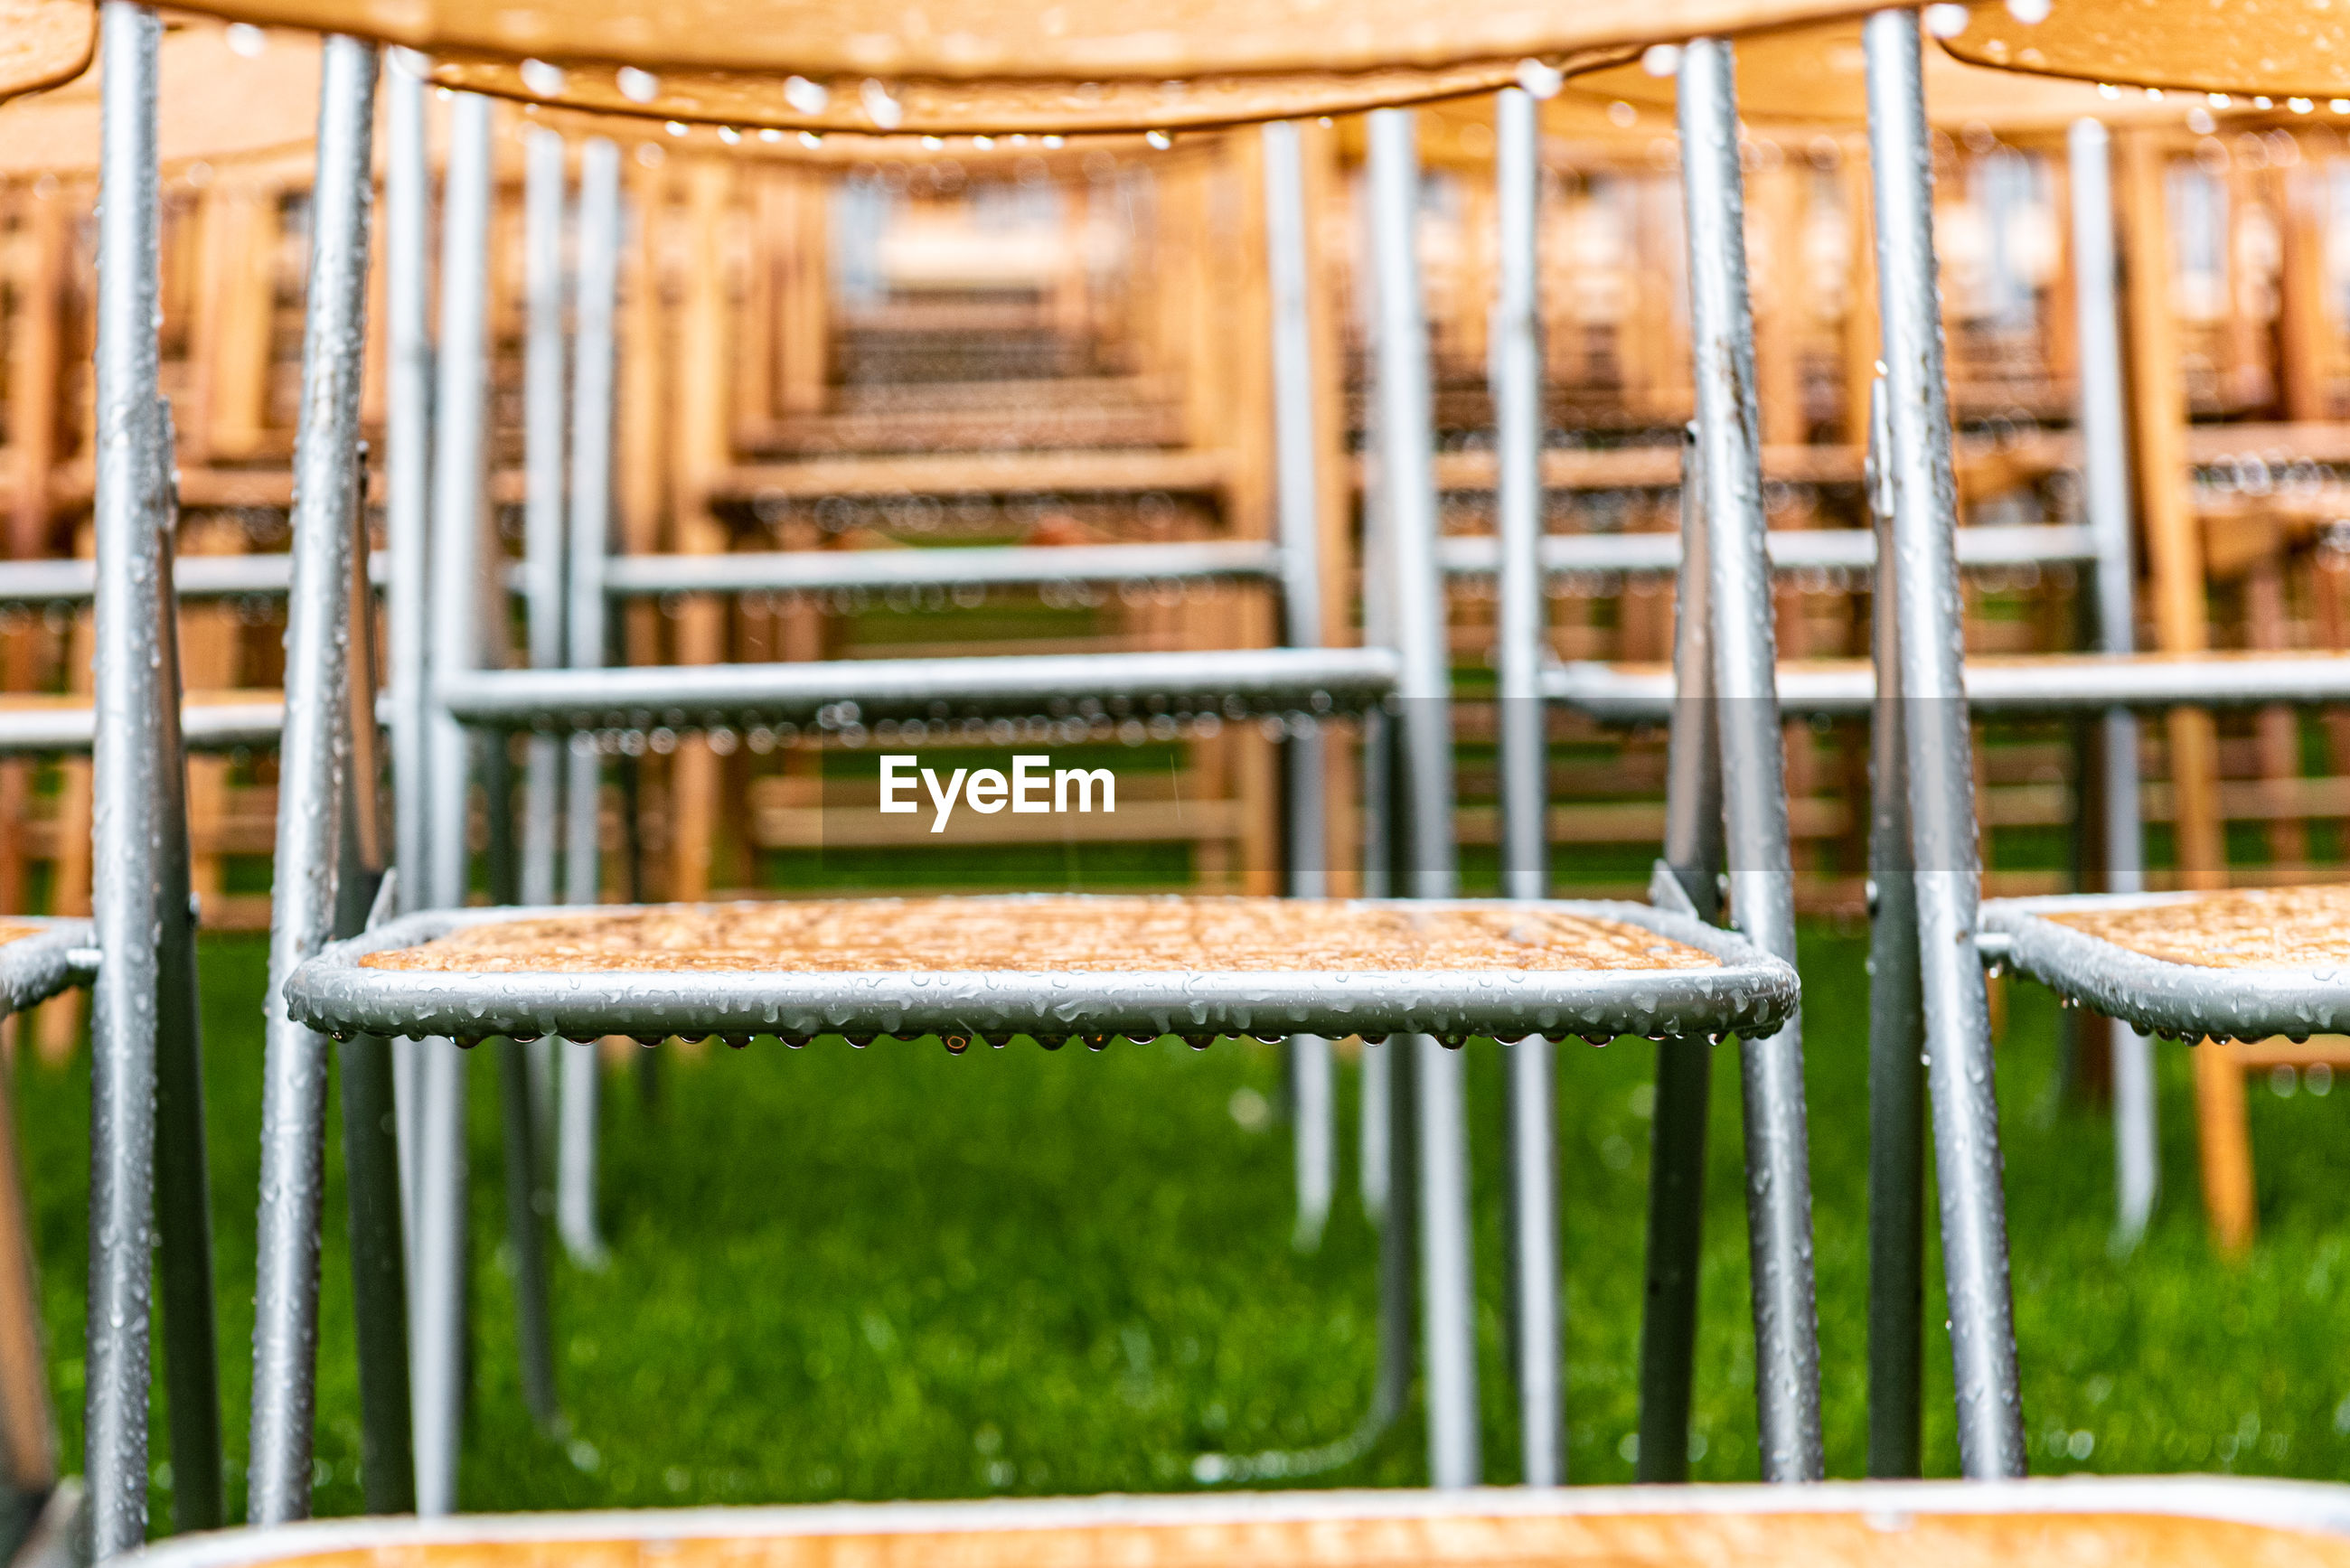 Lot of wooden chairs stand outside in the park in the rain. empty auditorium, grass, water drops.